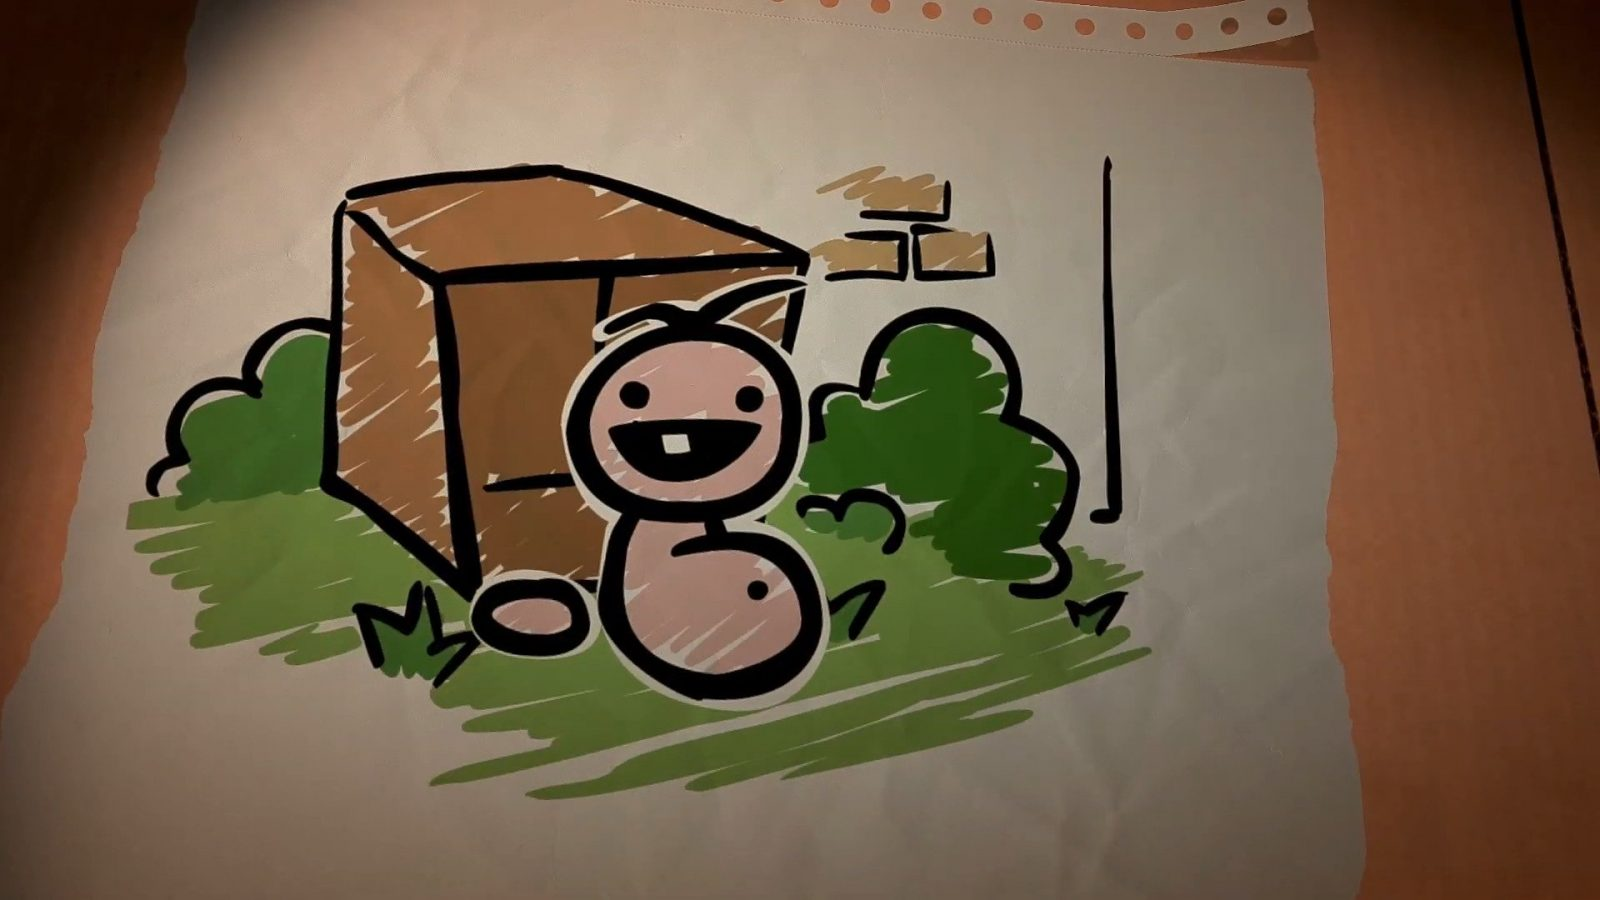 Binding of Isaac Prequel 'The Legend of Bum-Bo' Comes to Steam This November